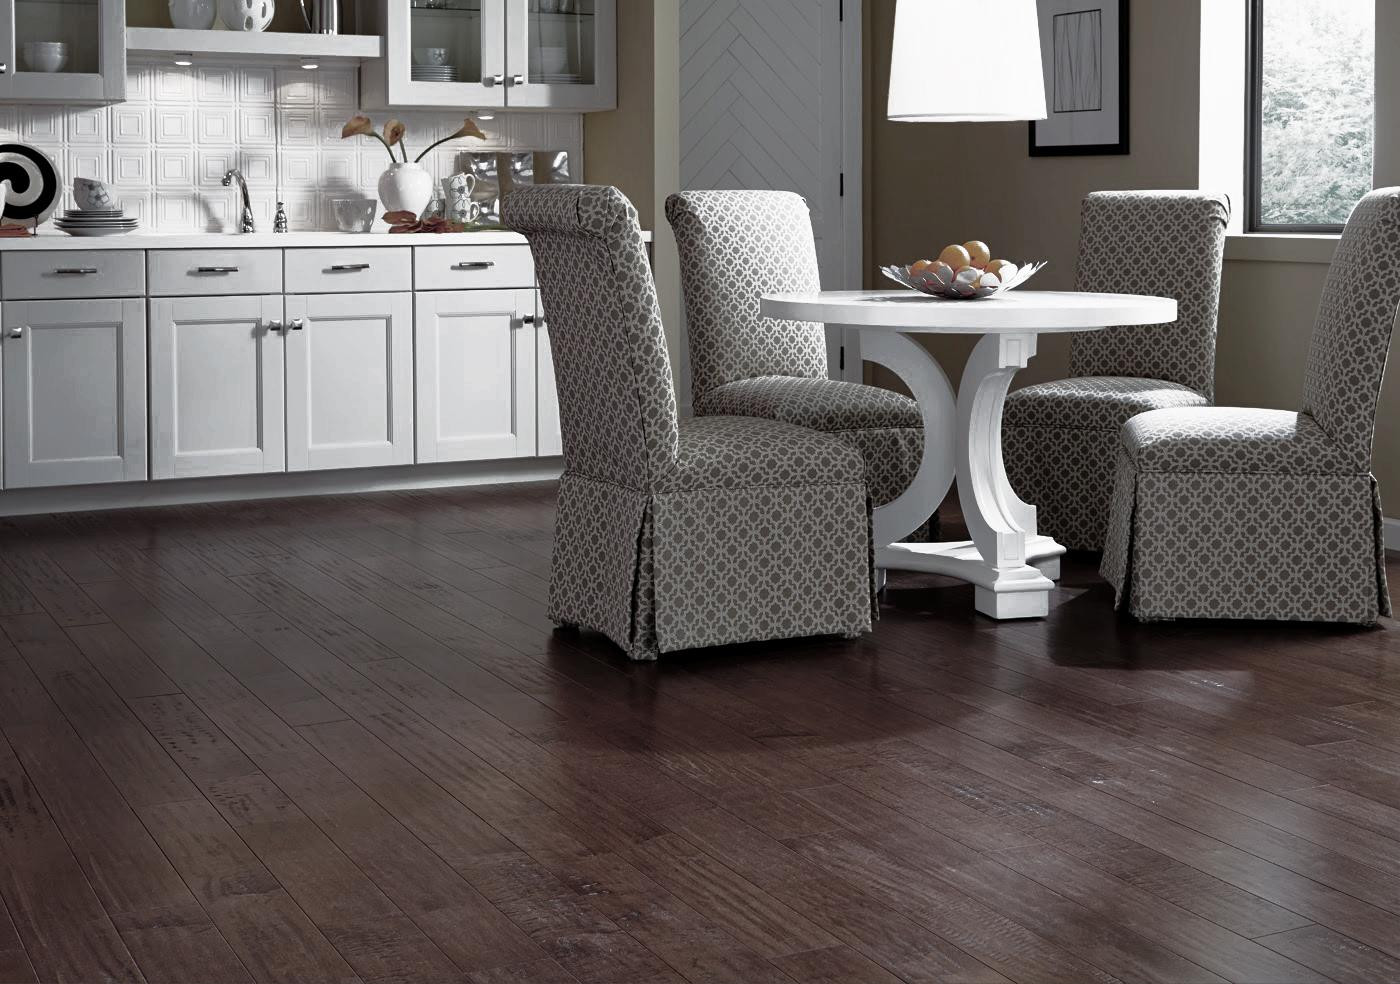 bruce hickory hardwood flooring of mullican lincolnshire sculpted hickory espresso 5 engineered with mullican lincolnshire sculpted hickory espresso 5 engineered hardwood flooring